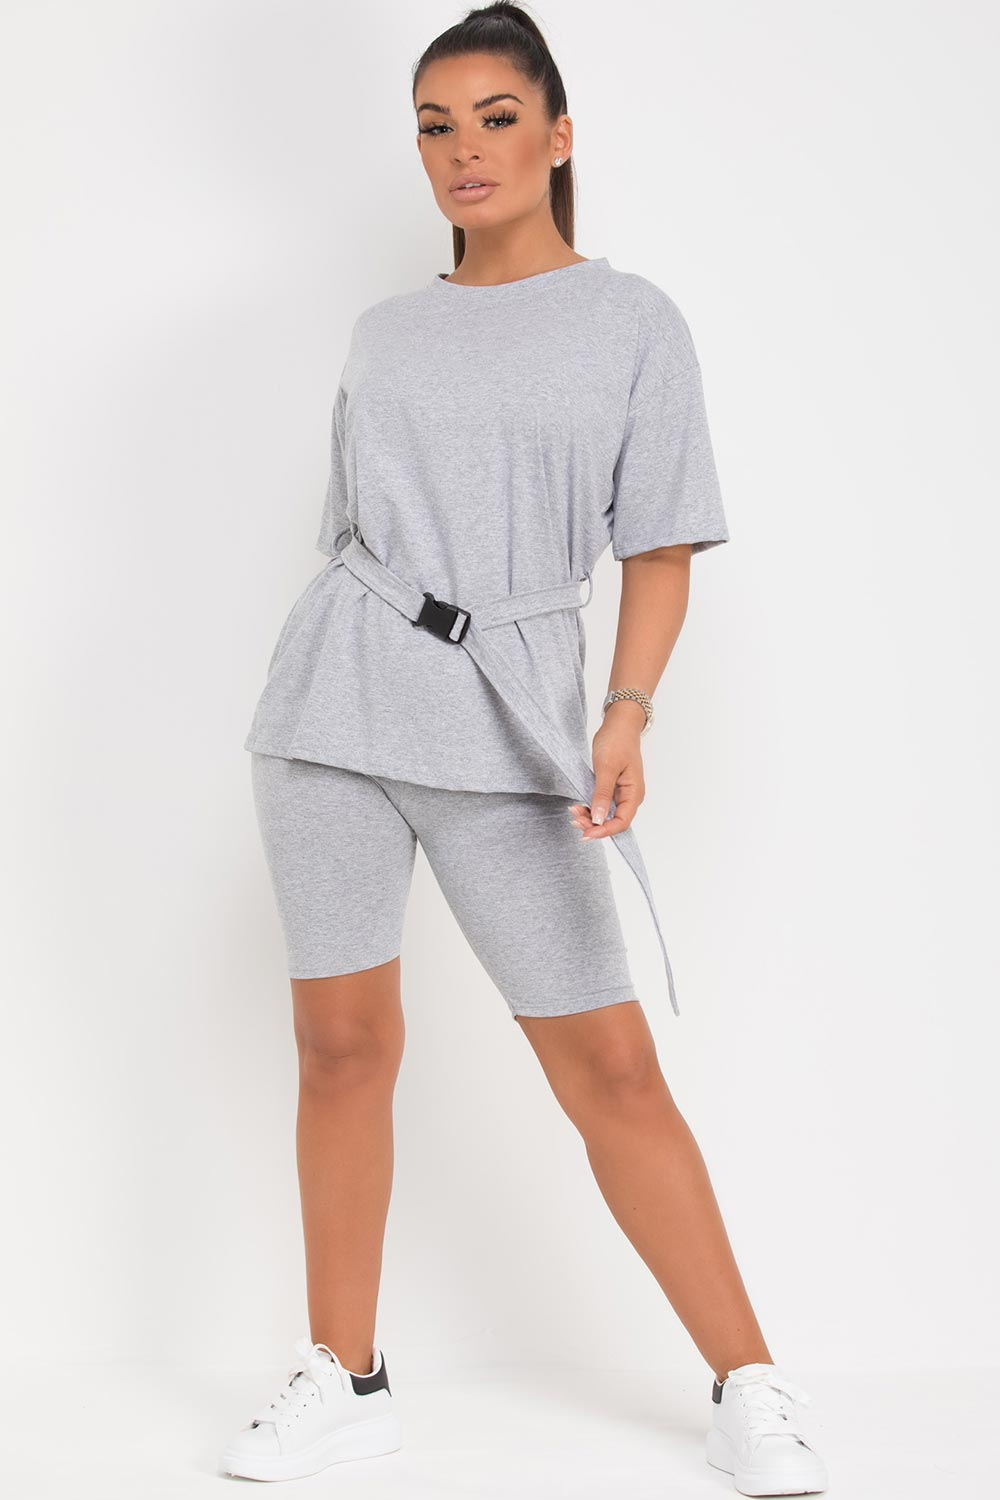 grey oversized top with utility belt cycling shorts set